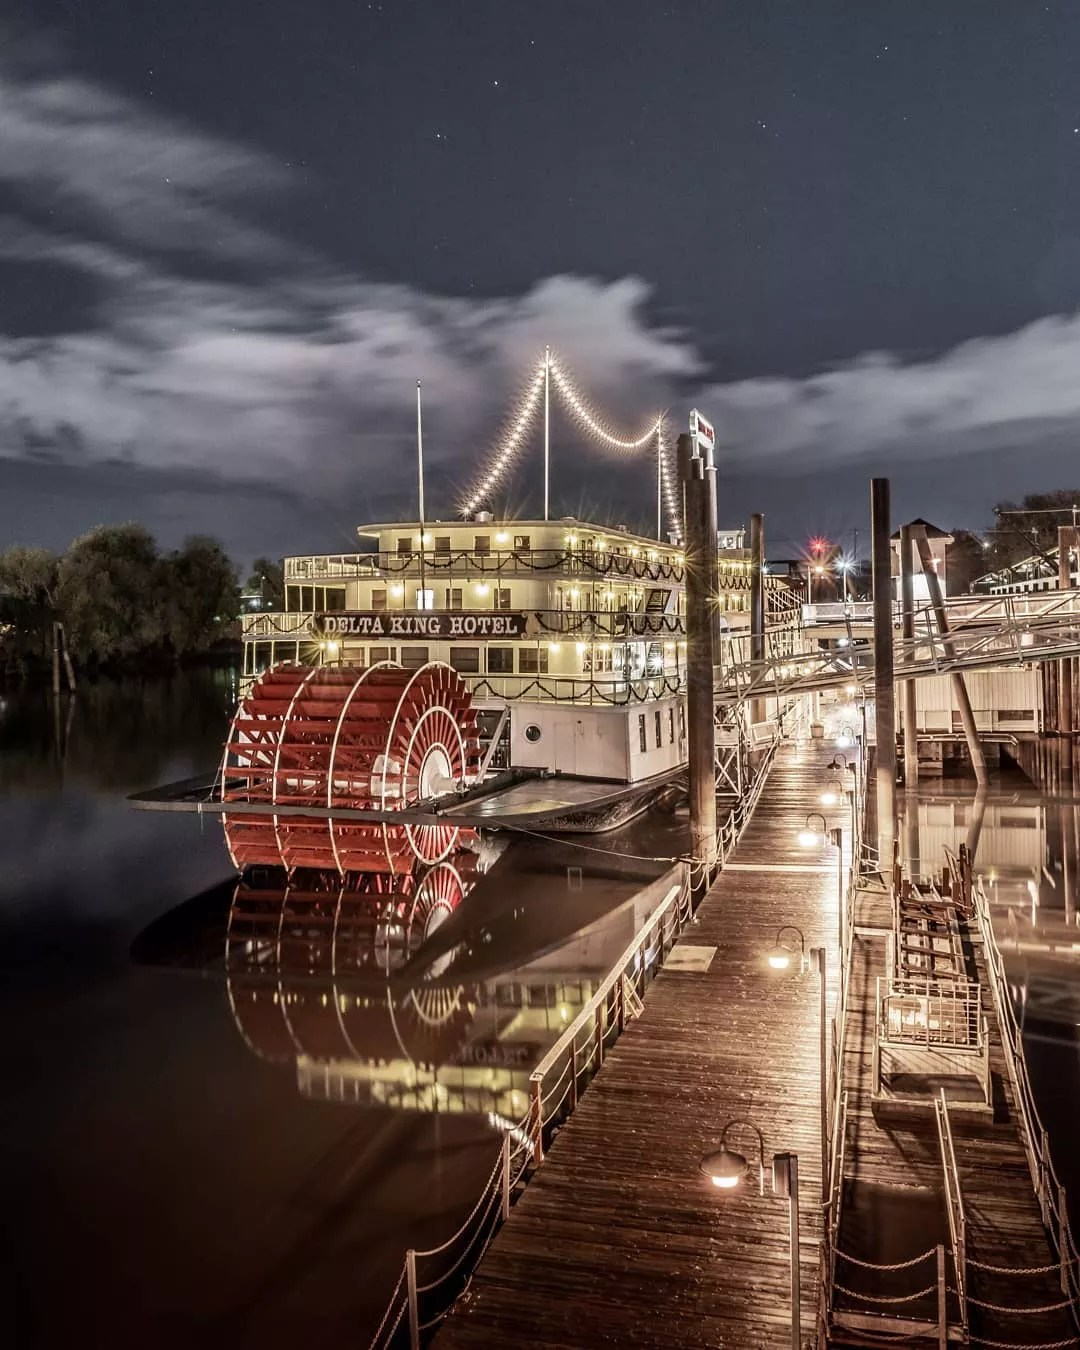 Riverboat with lights on it. Photo by Instagram user @mattfraser9